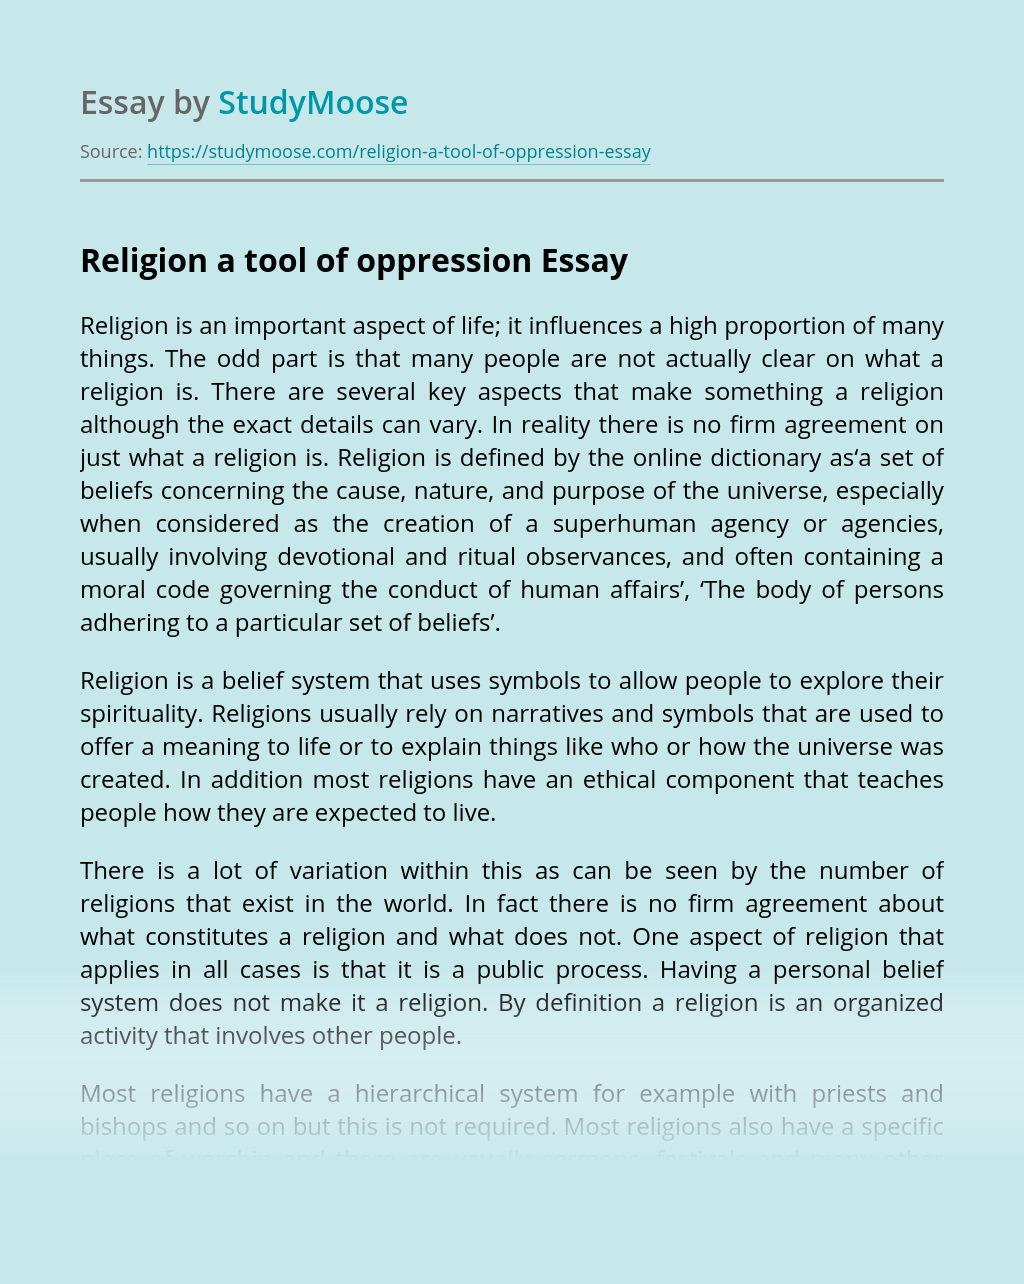 Religion a tool of oppression